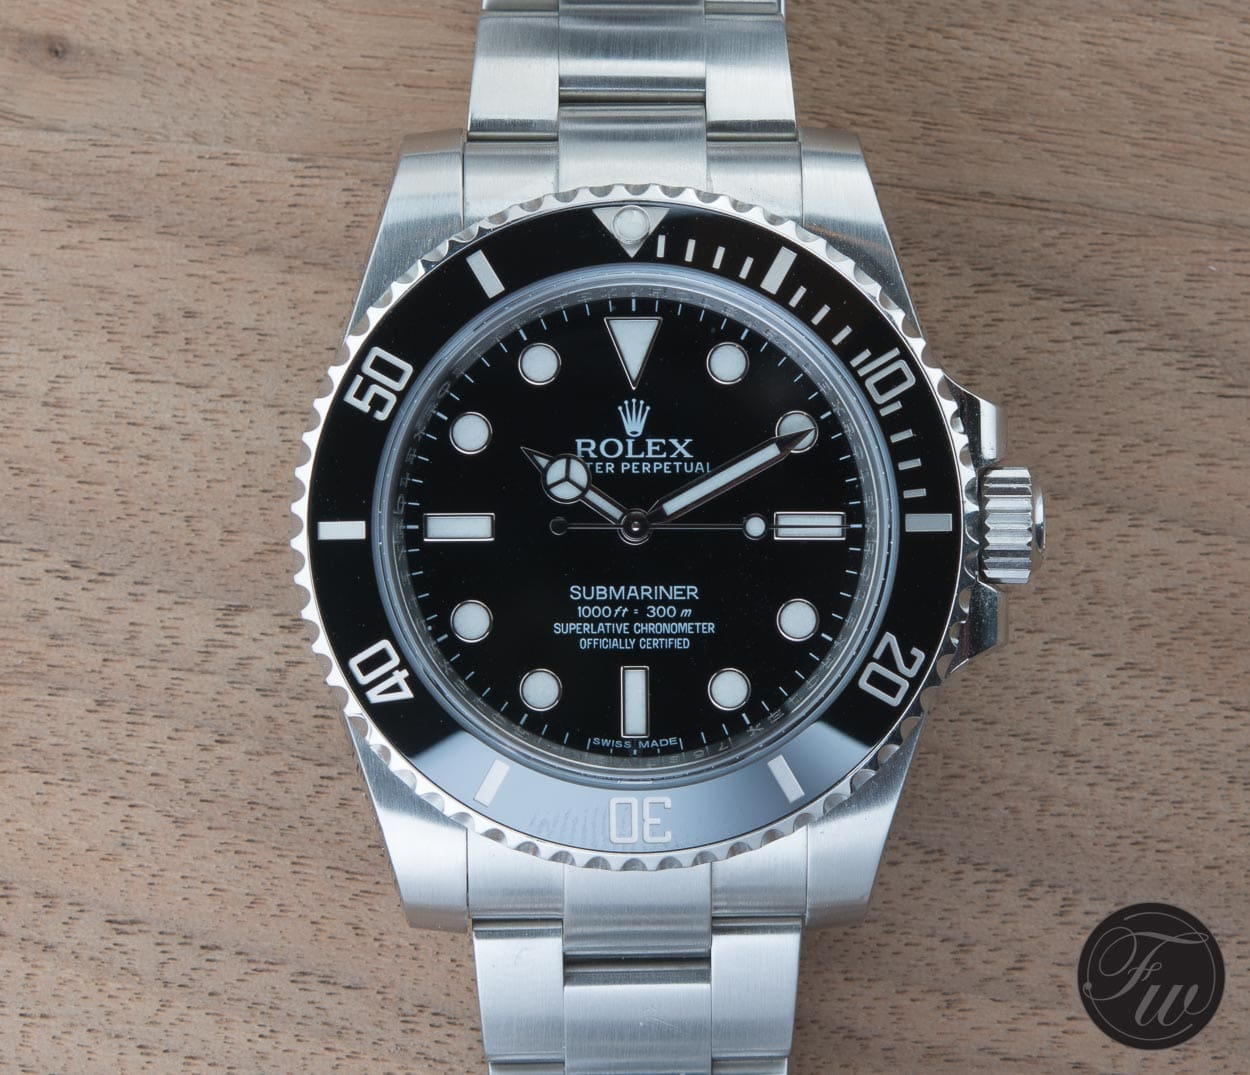 Rolex Submariner - Historical Overview Of A Diving Legend